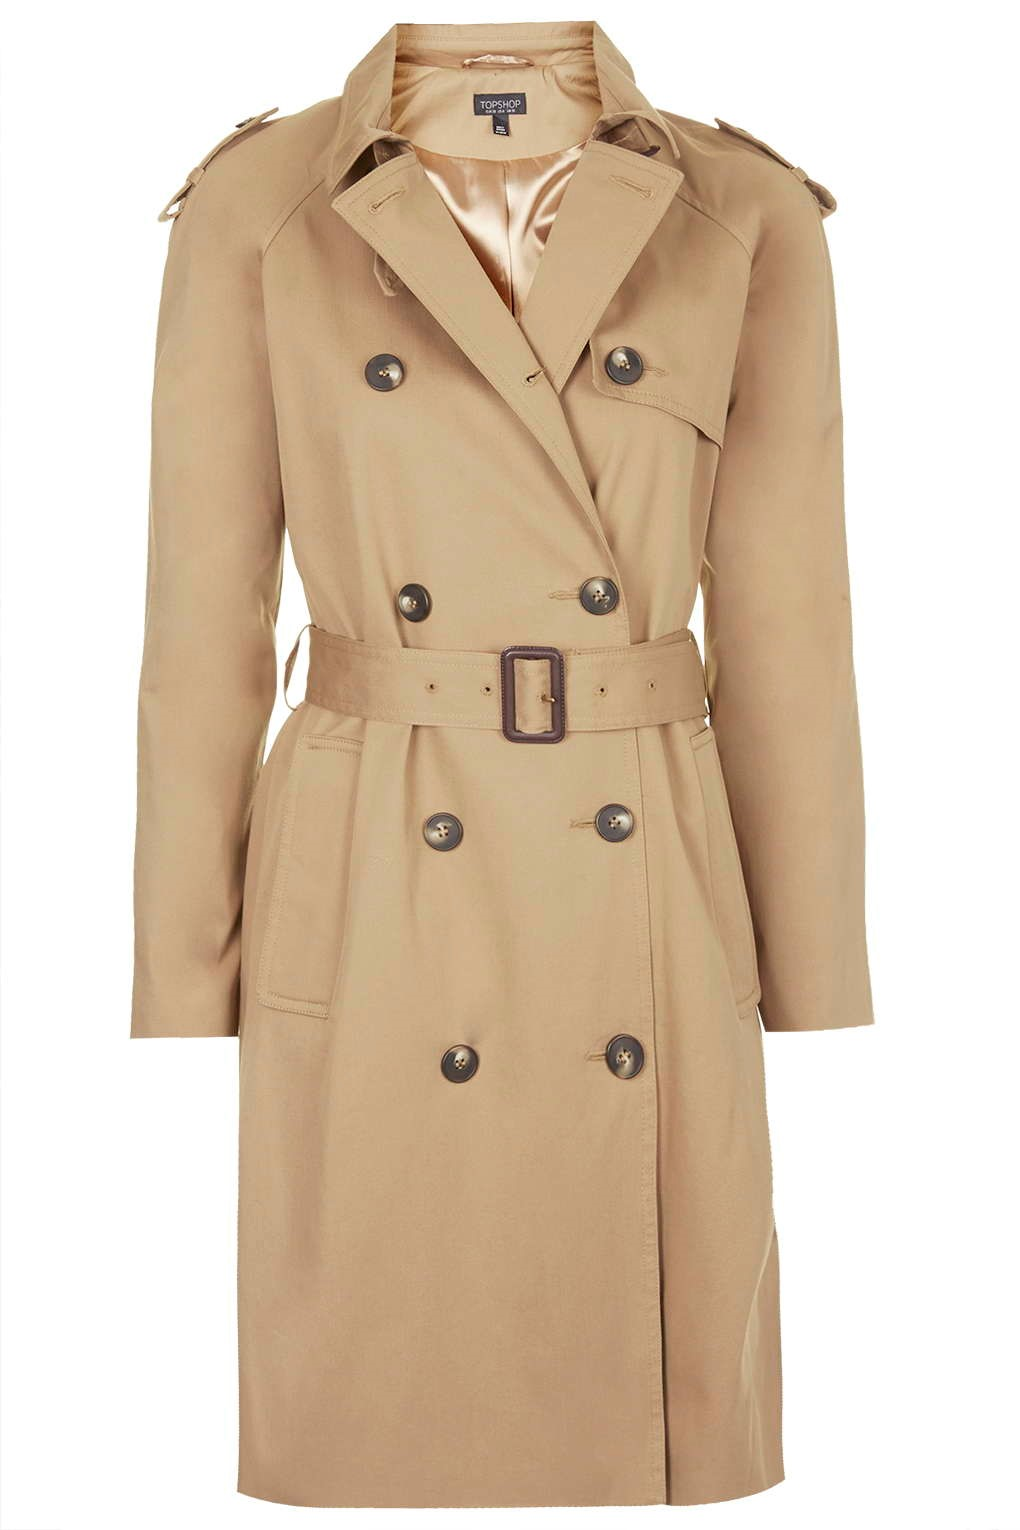 Topshop Cotton Camel Trench Coat, £75